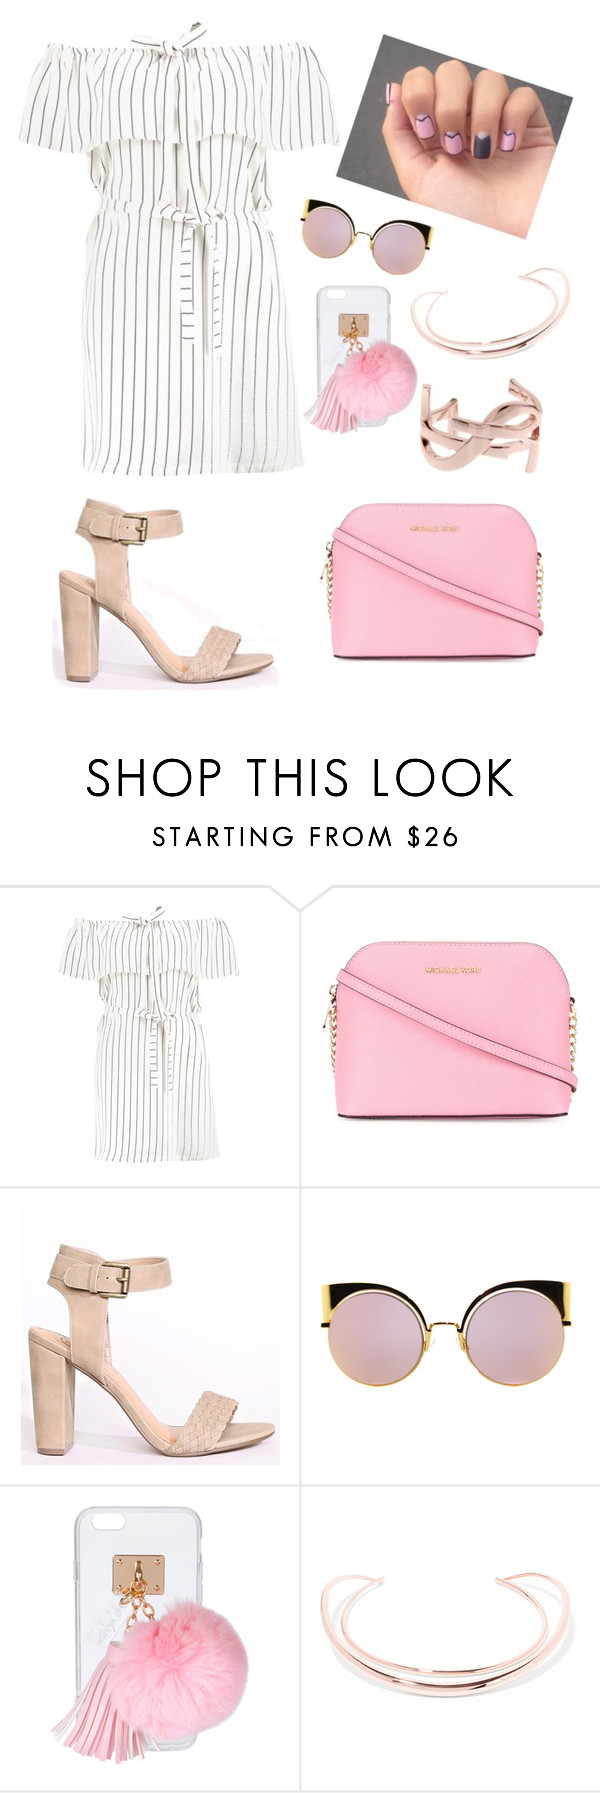 """First date💕"" by juliakhylko ❤ liked on Polyvore featuring Boohoo, MICHAEL Michael Kors, Fendi, Ashlyn'd, Ryan Storer and Yves Saint Laurent"